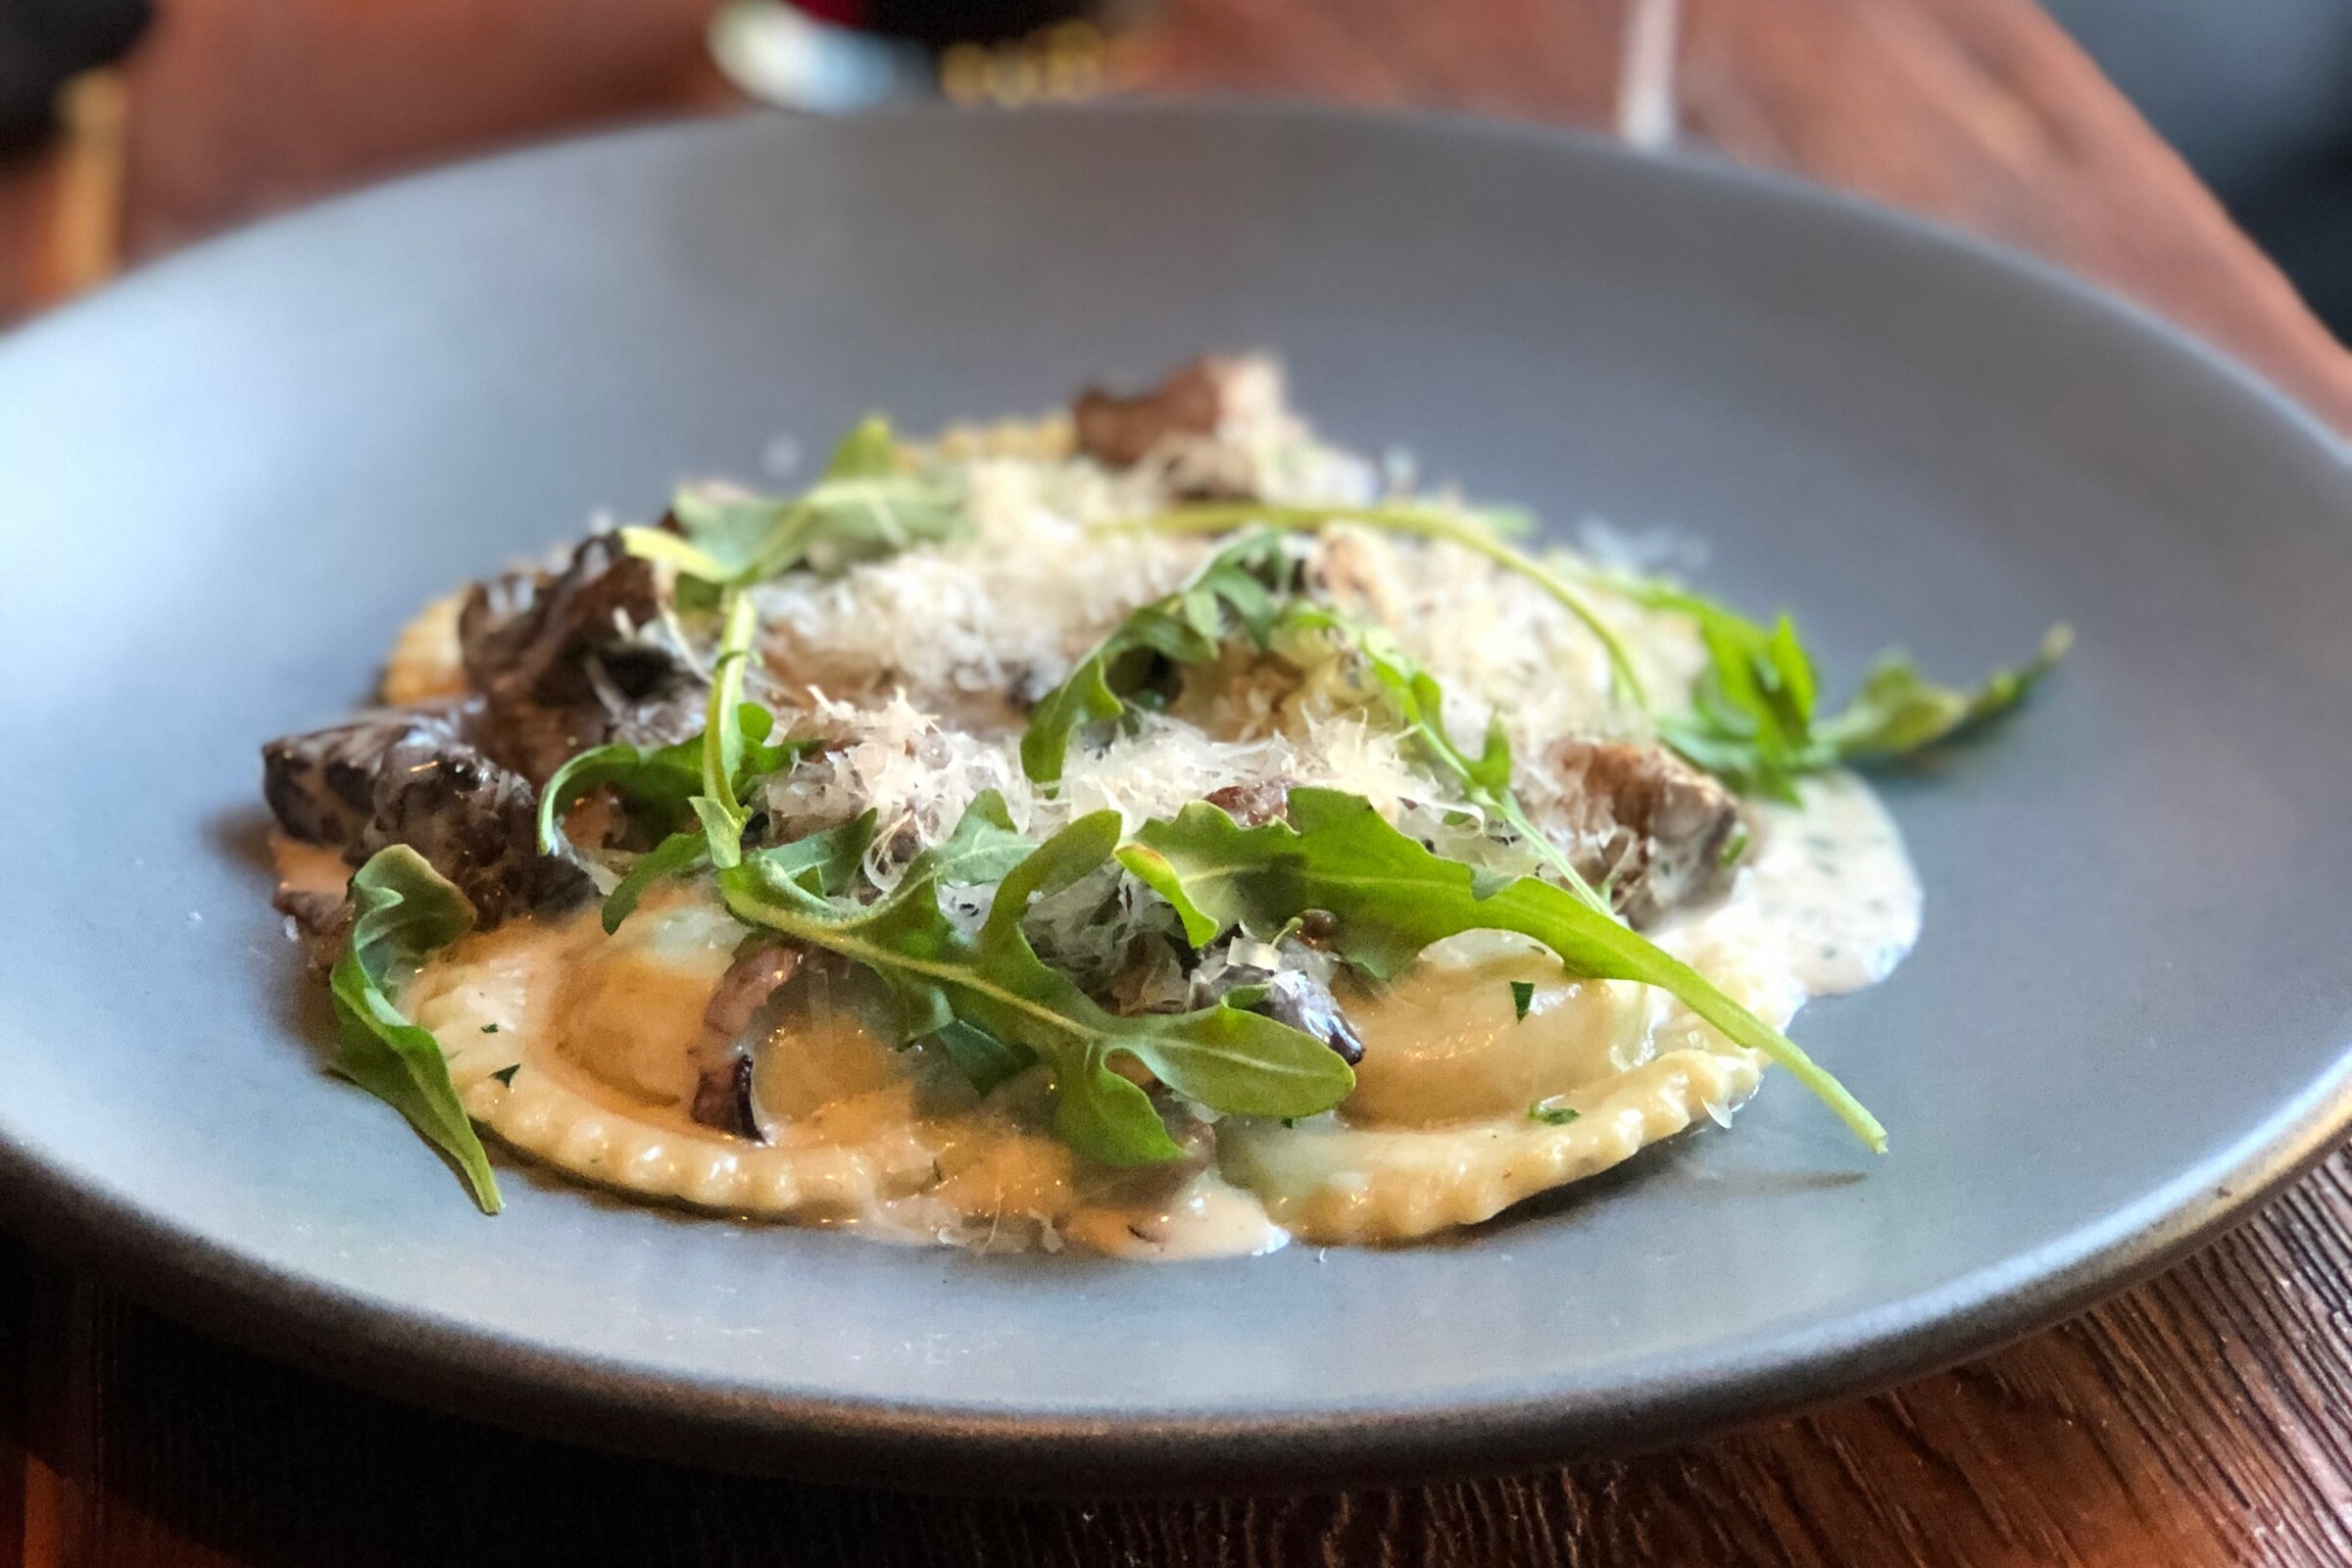 Bankers Hill Bar + Restaurant will fill the hearts, and stomachs, of ravioli lovers on National Ravioli Day.